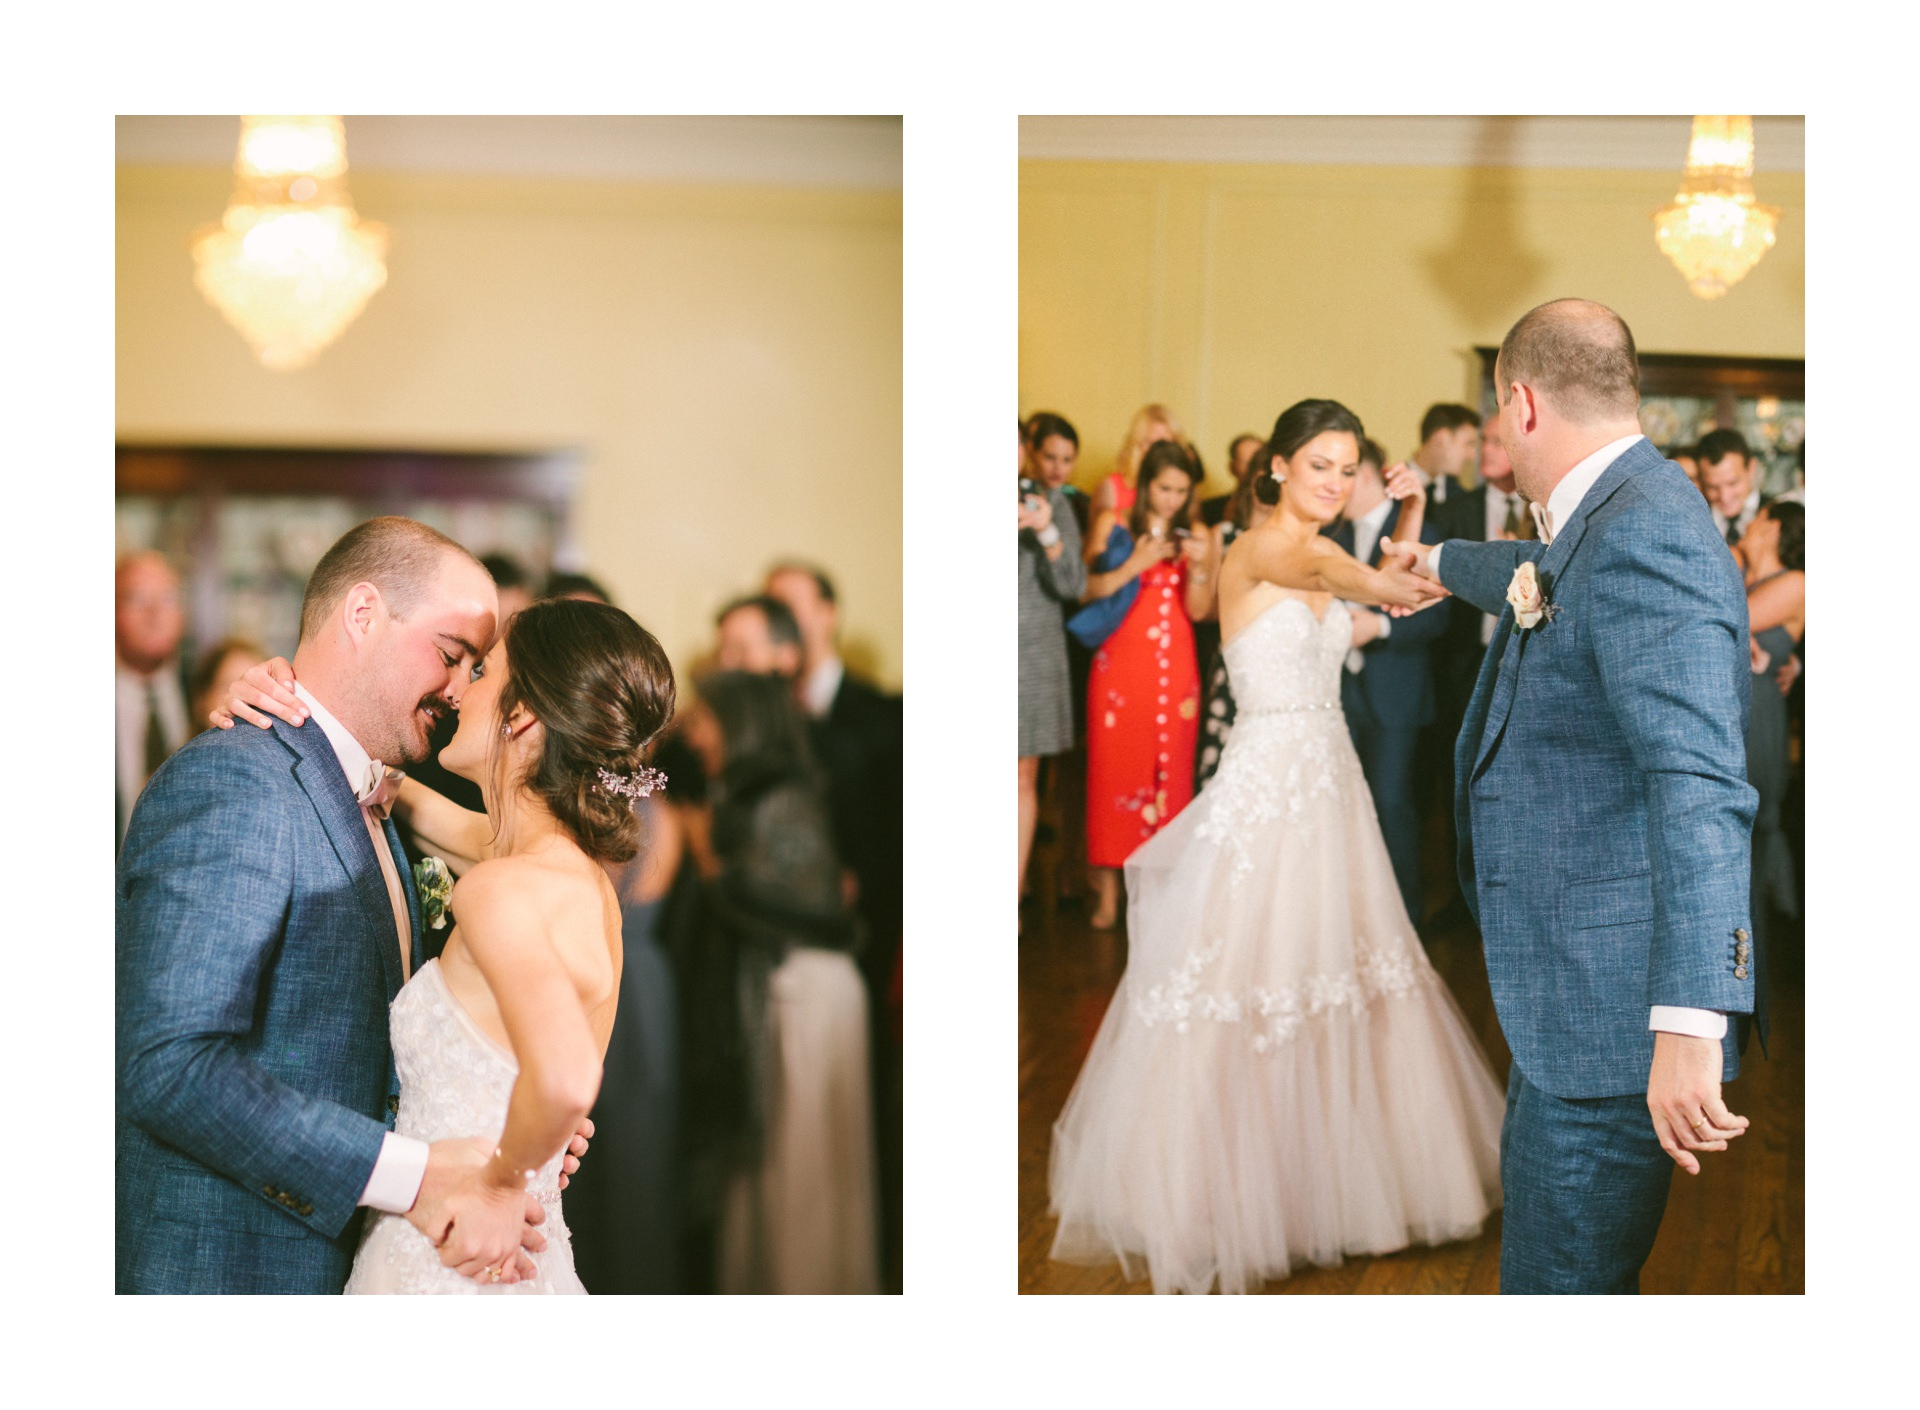 Wedding at Kirtland Country Club in Willoughby 3 38.jpg